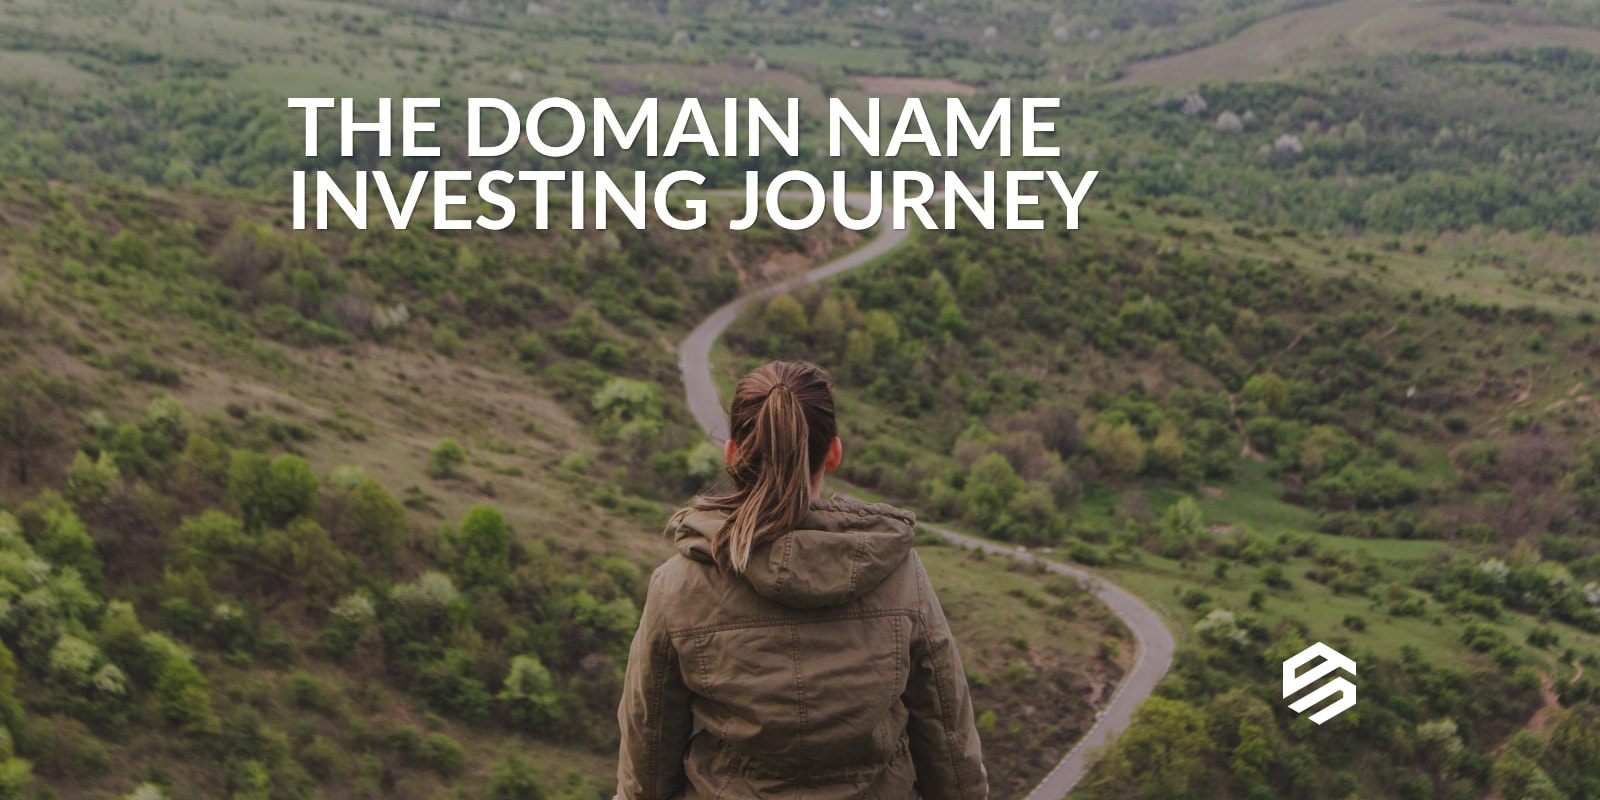 The Domain Name Investing Journey